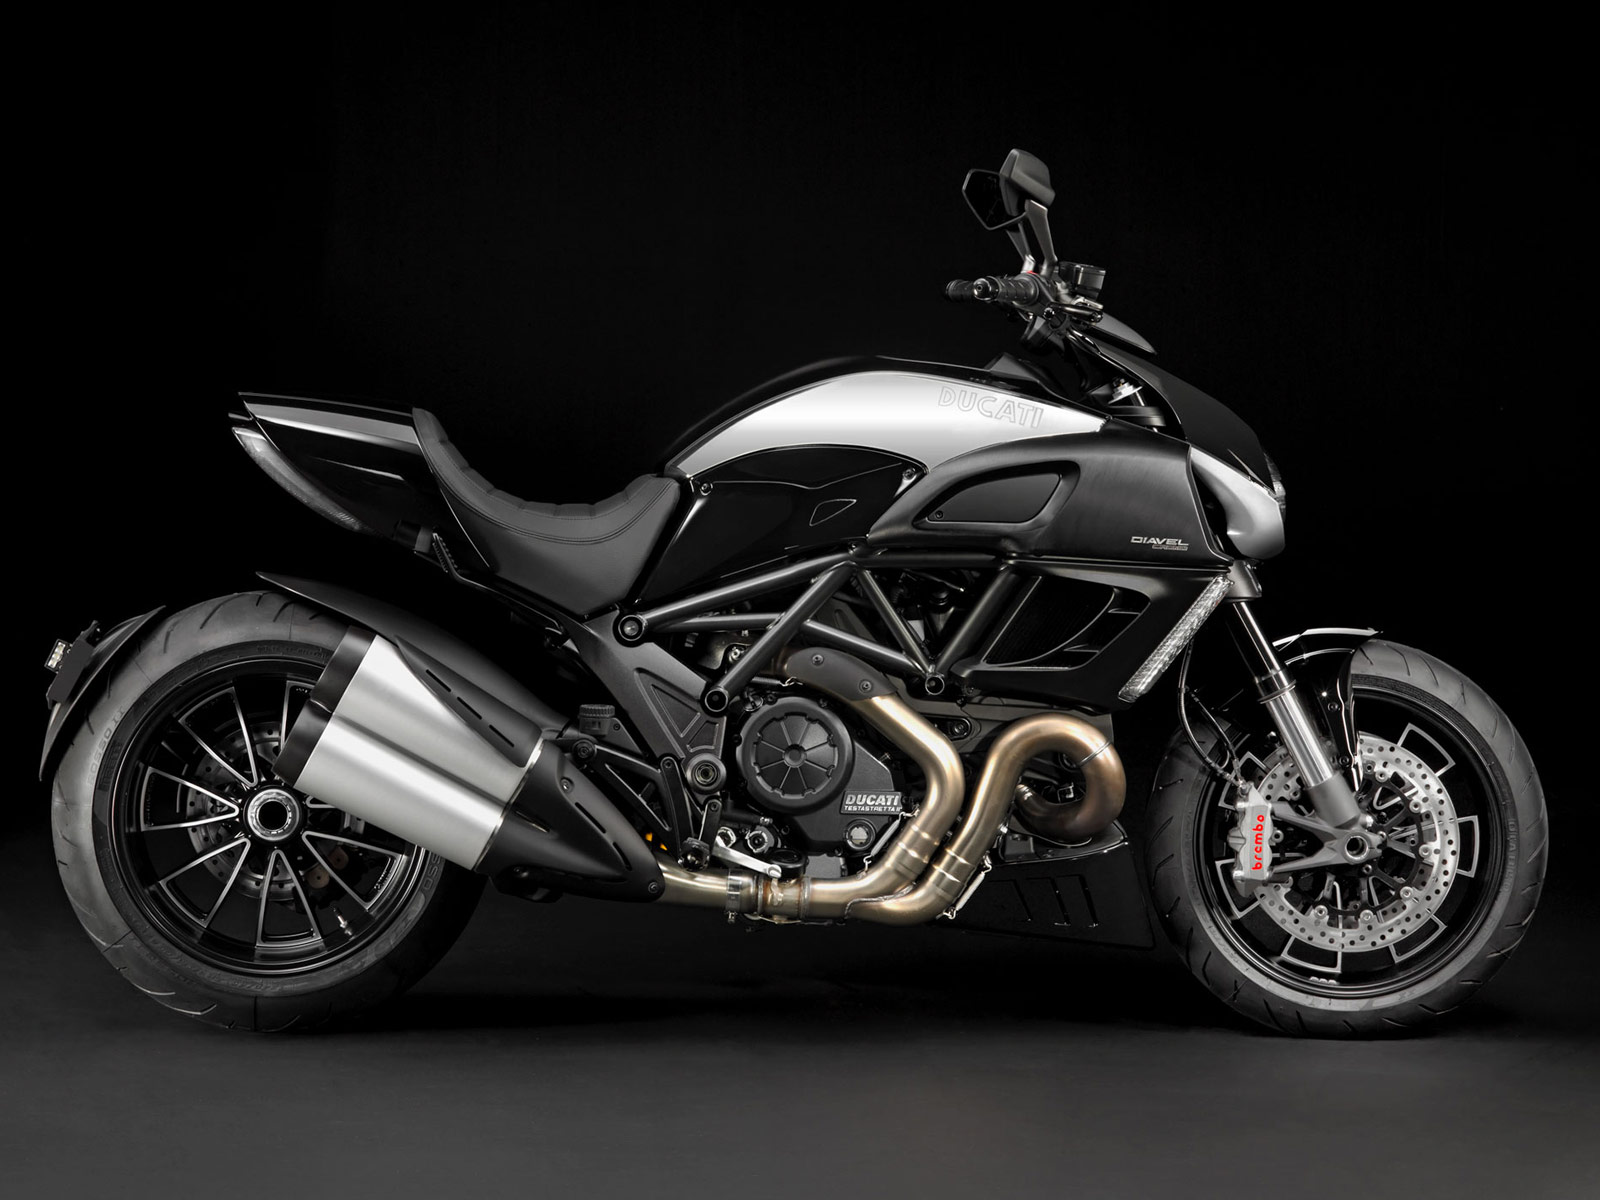 2012 ducati diavel cromo motorcycle insurance information. Black Bedroom Furniture Sets. Home Design Ideas